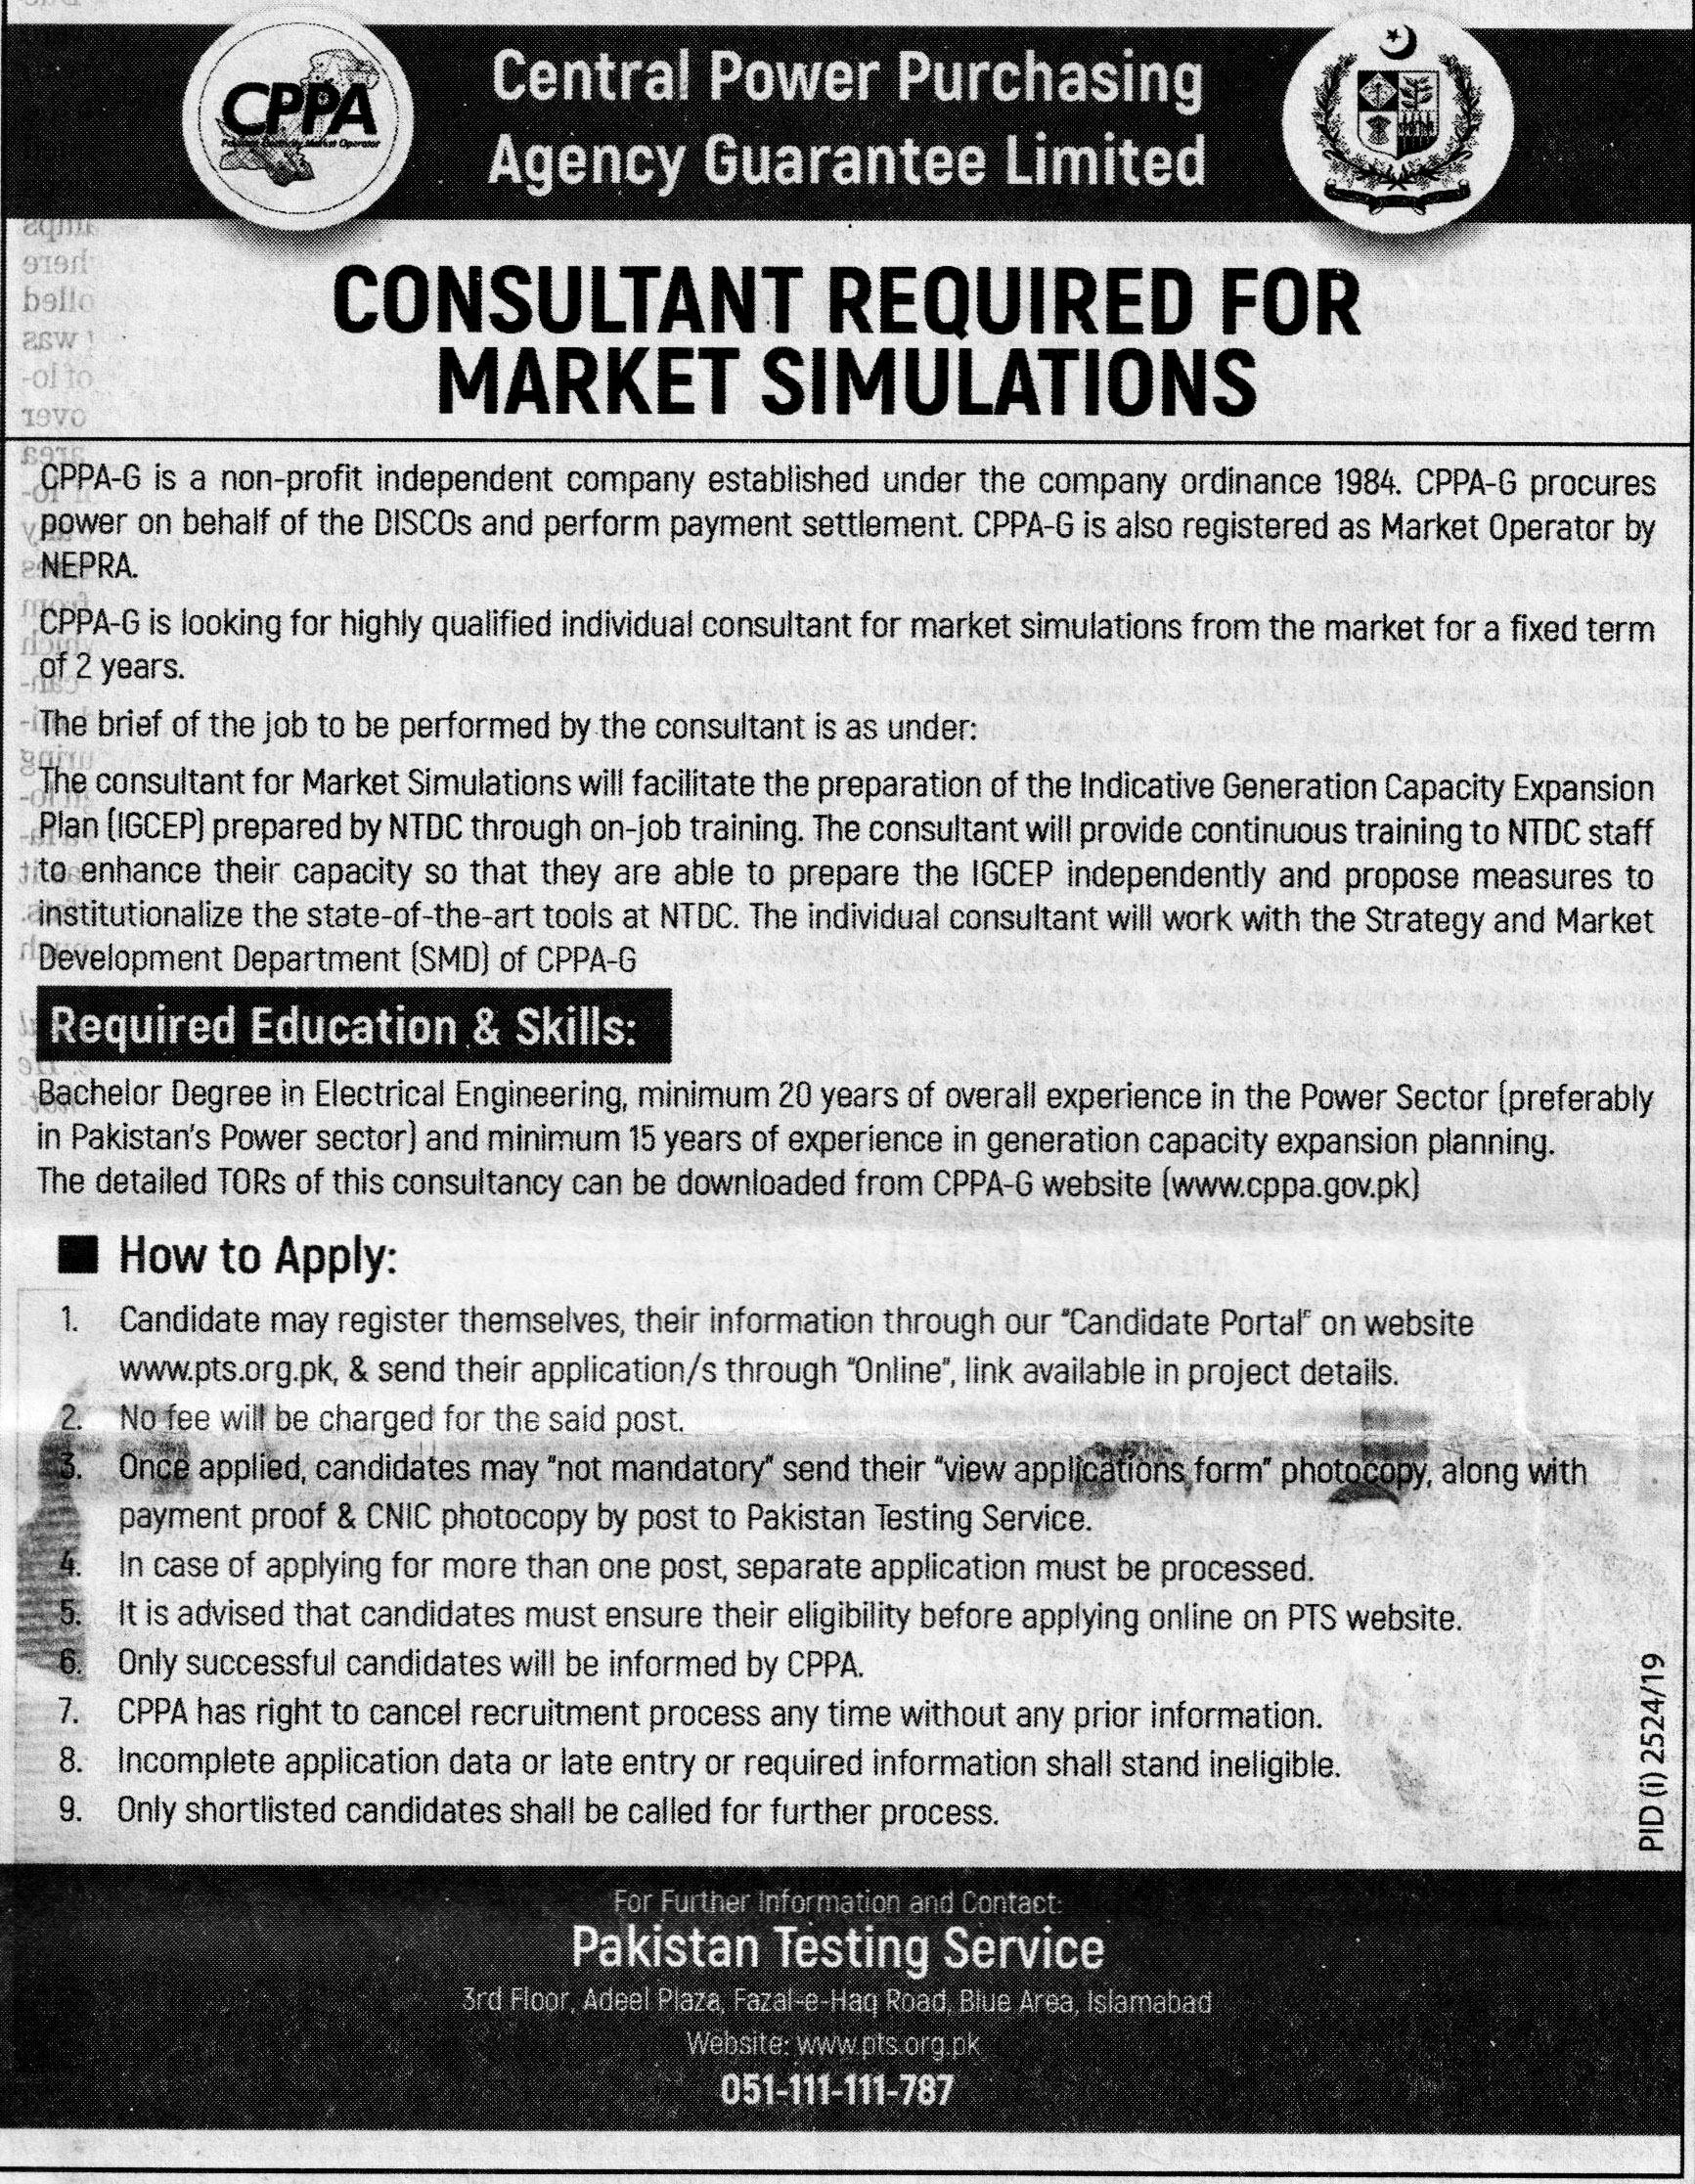 Consultant Job In Central Power Purchasing Agency Guarantee Limited  Islamabad